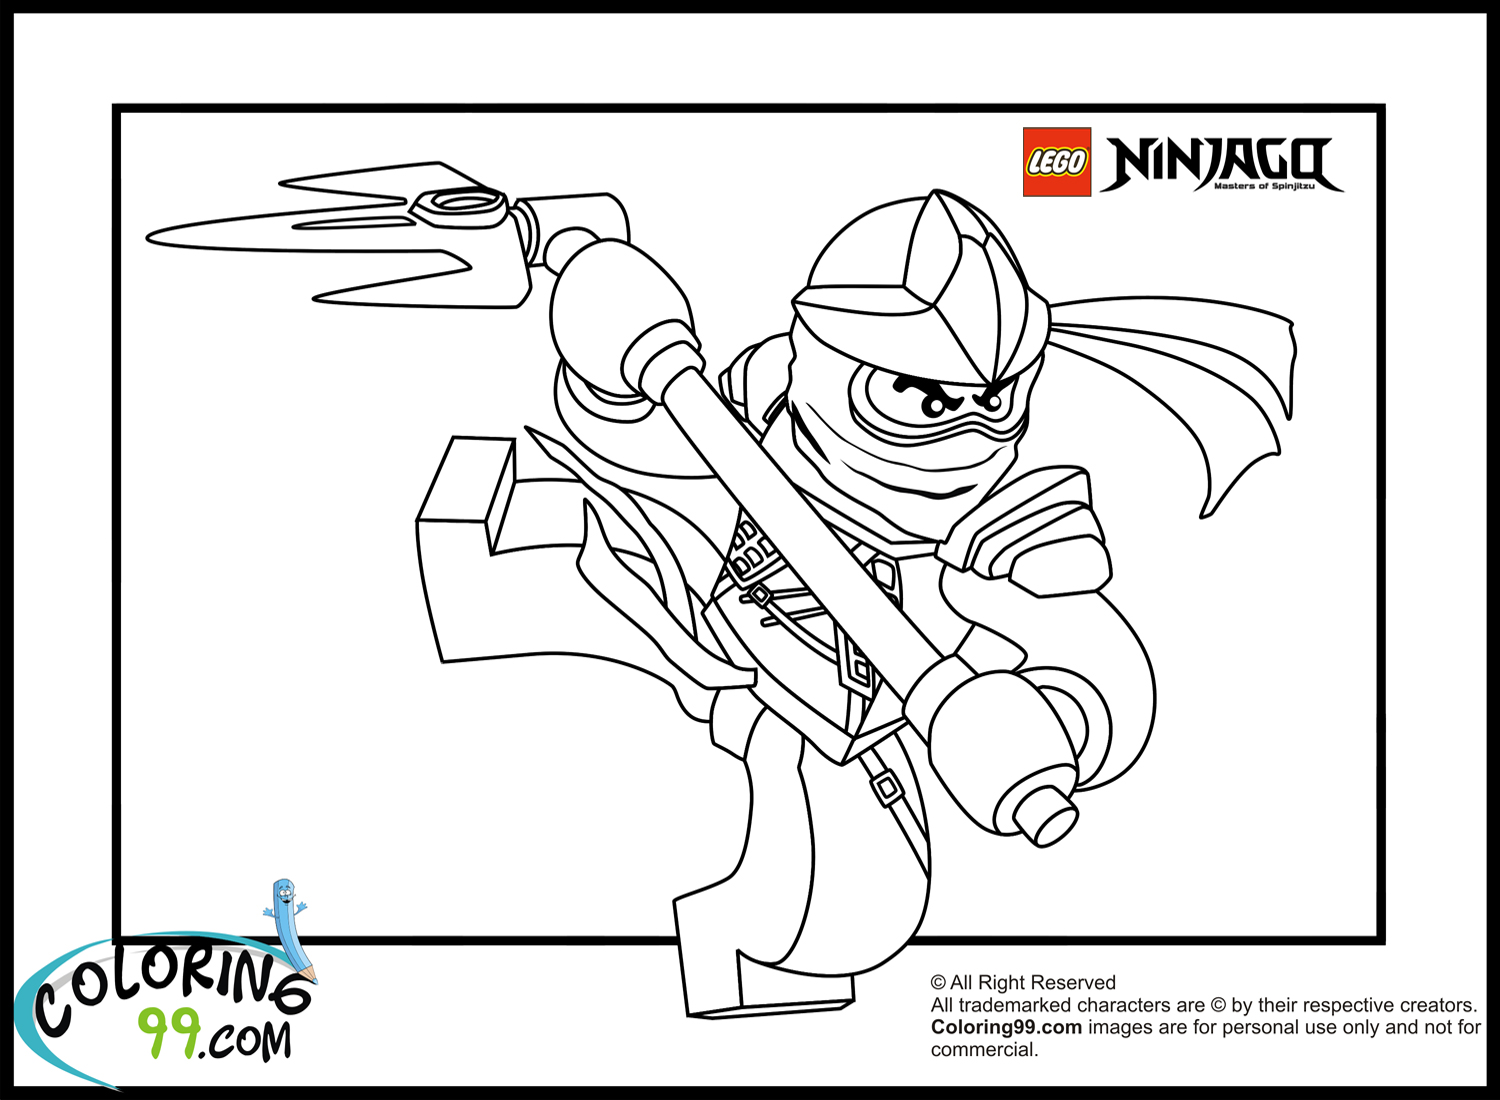 Lego ninjago cole coloring pages team colors for Lego ninjago coloring pages cole